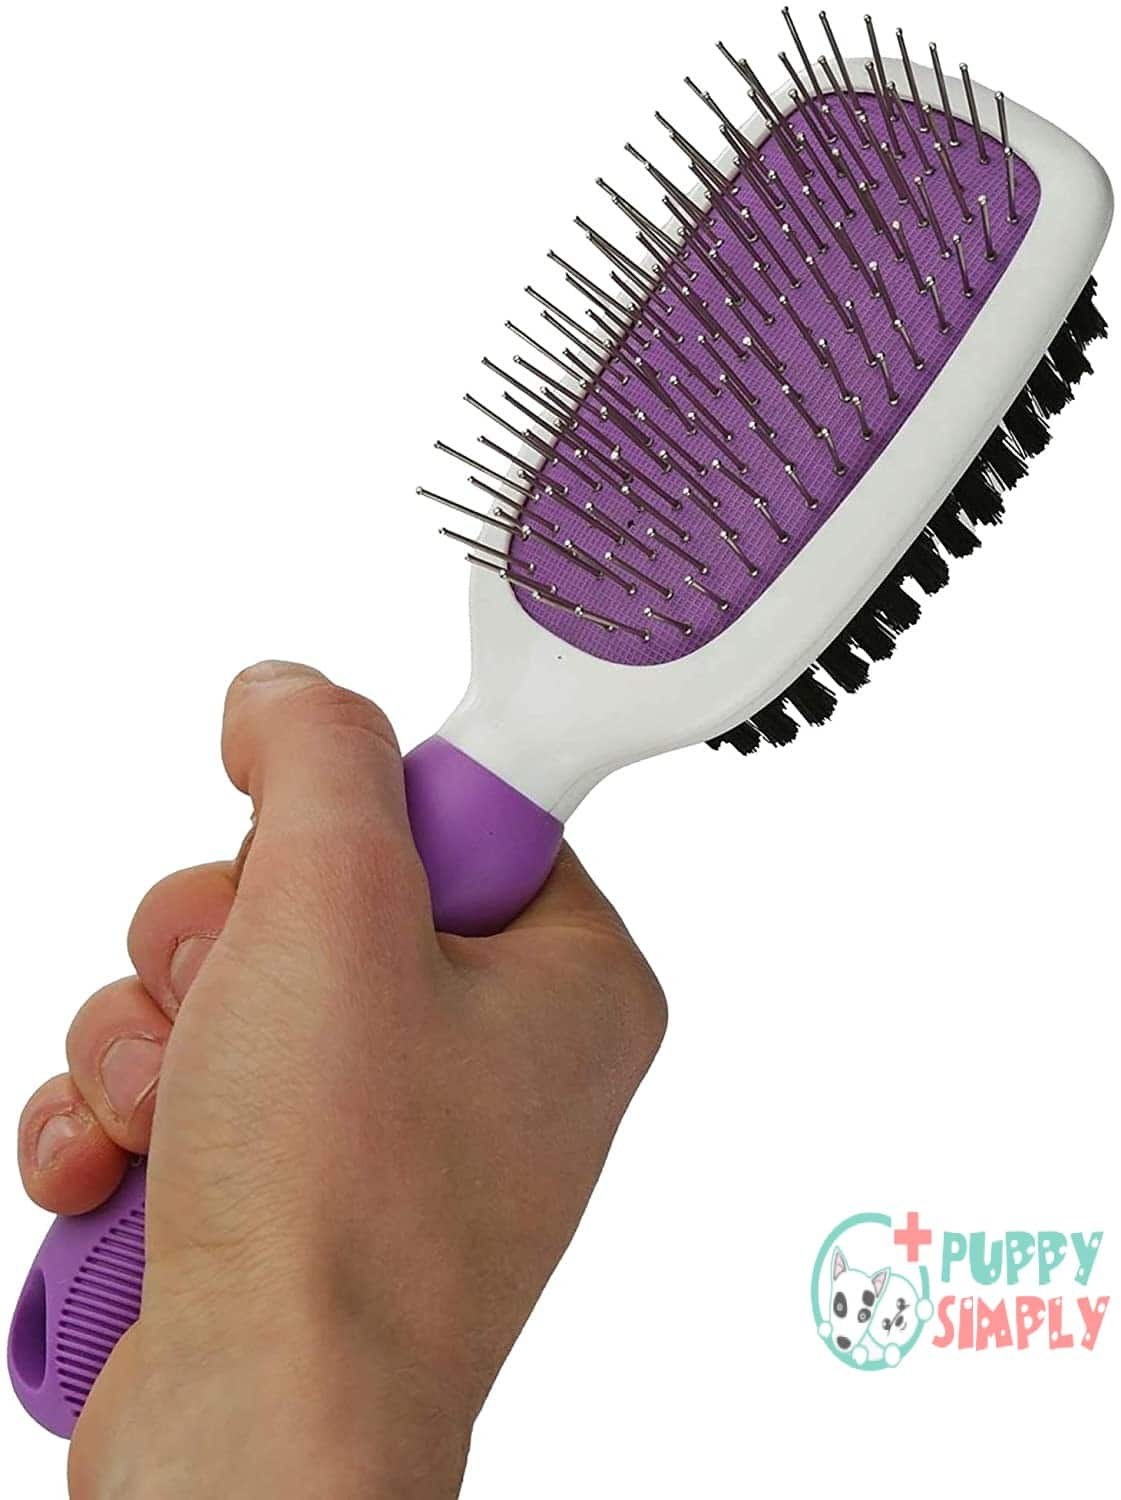 Double-Sided Pet Brush for Grooming